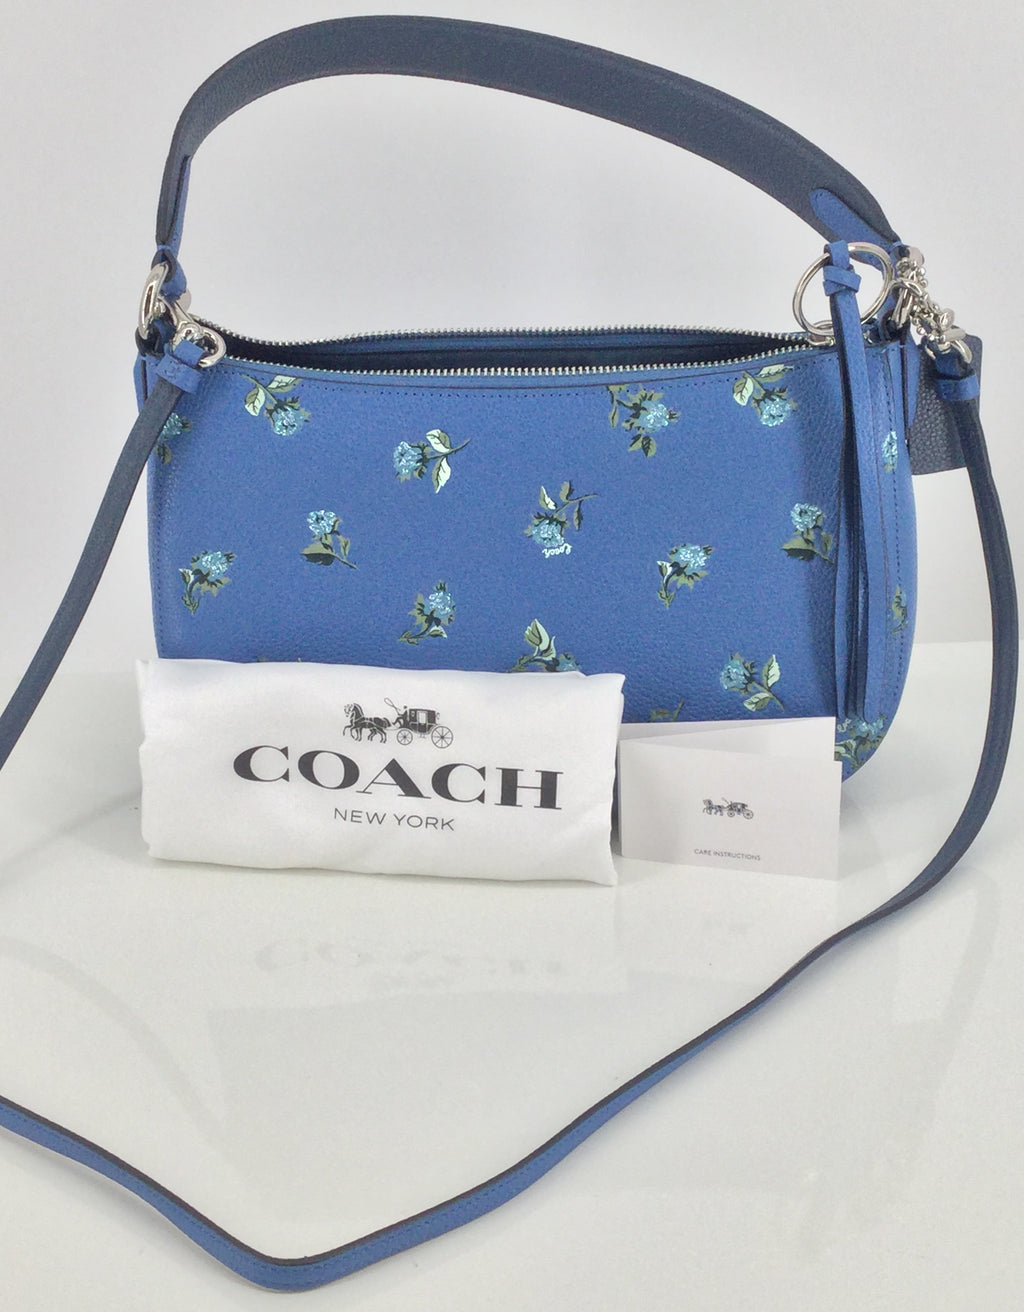 Coach Blue Floral Crossbody Handbag